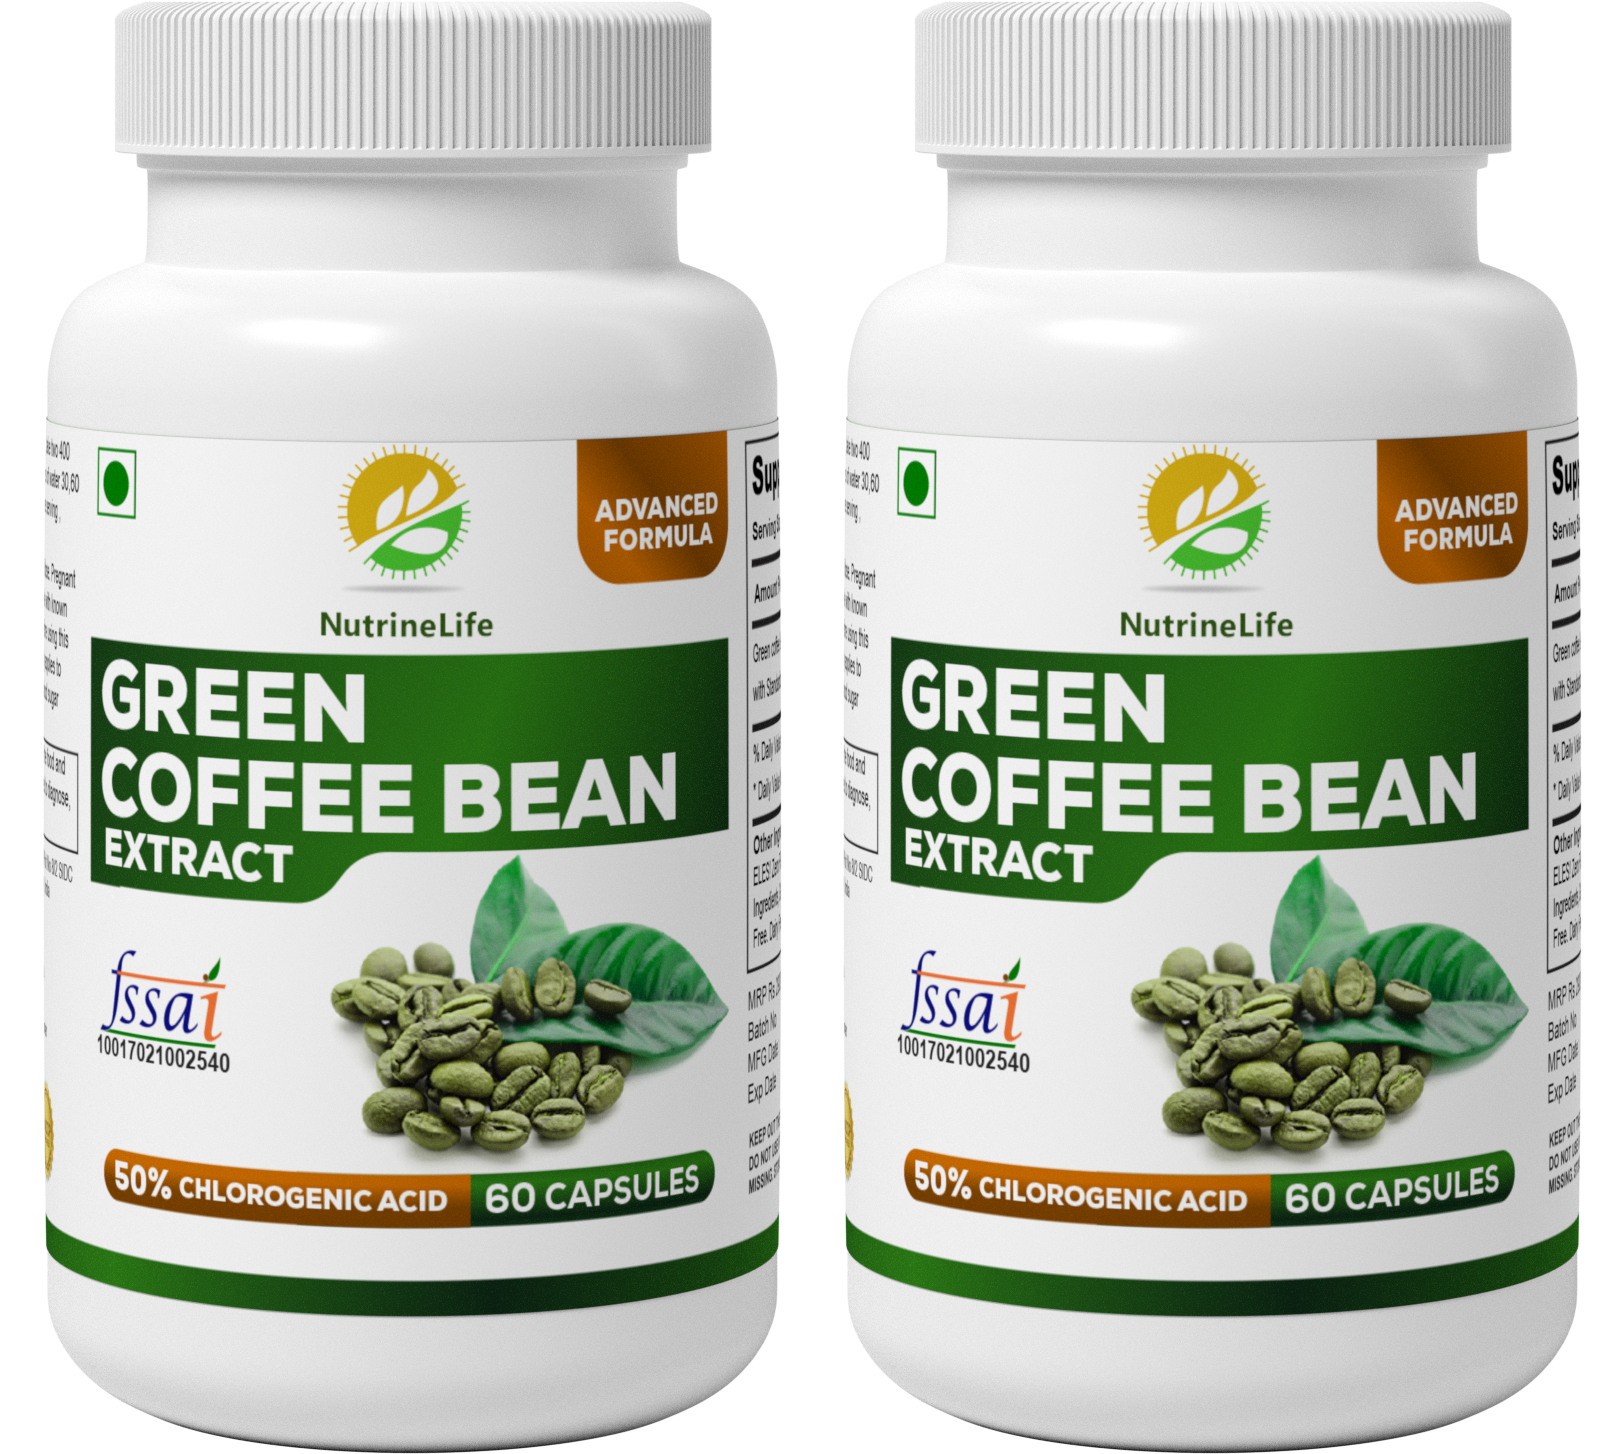 Top 9 Benefits of Green Coffee Beans You Should Not Miss